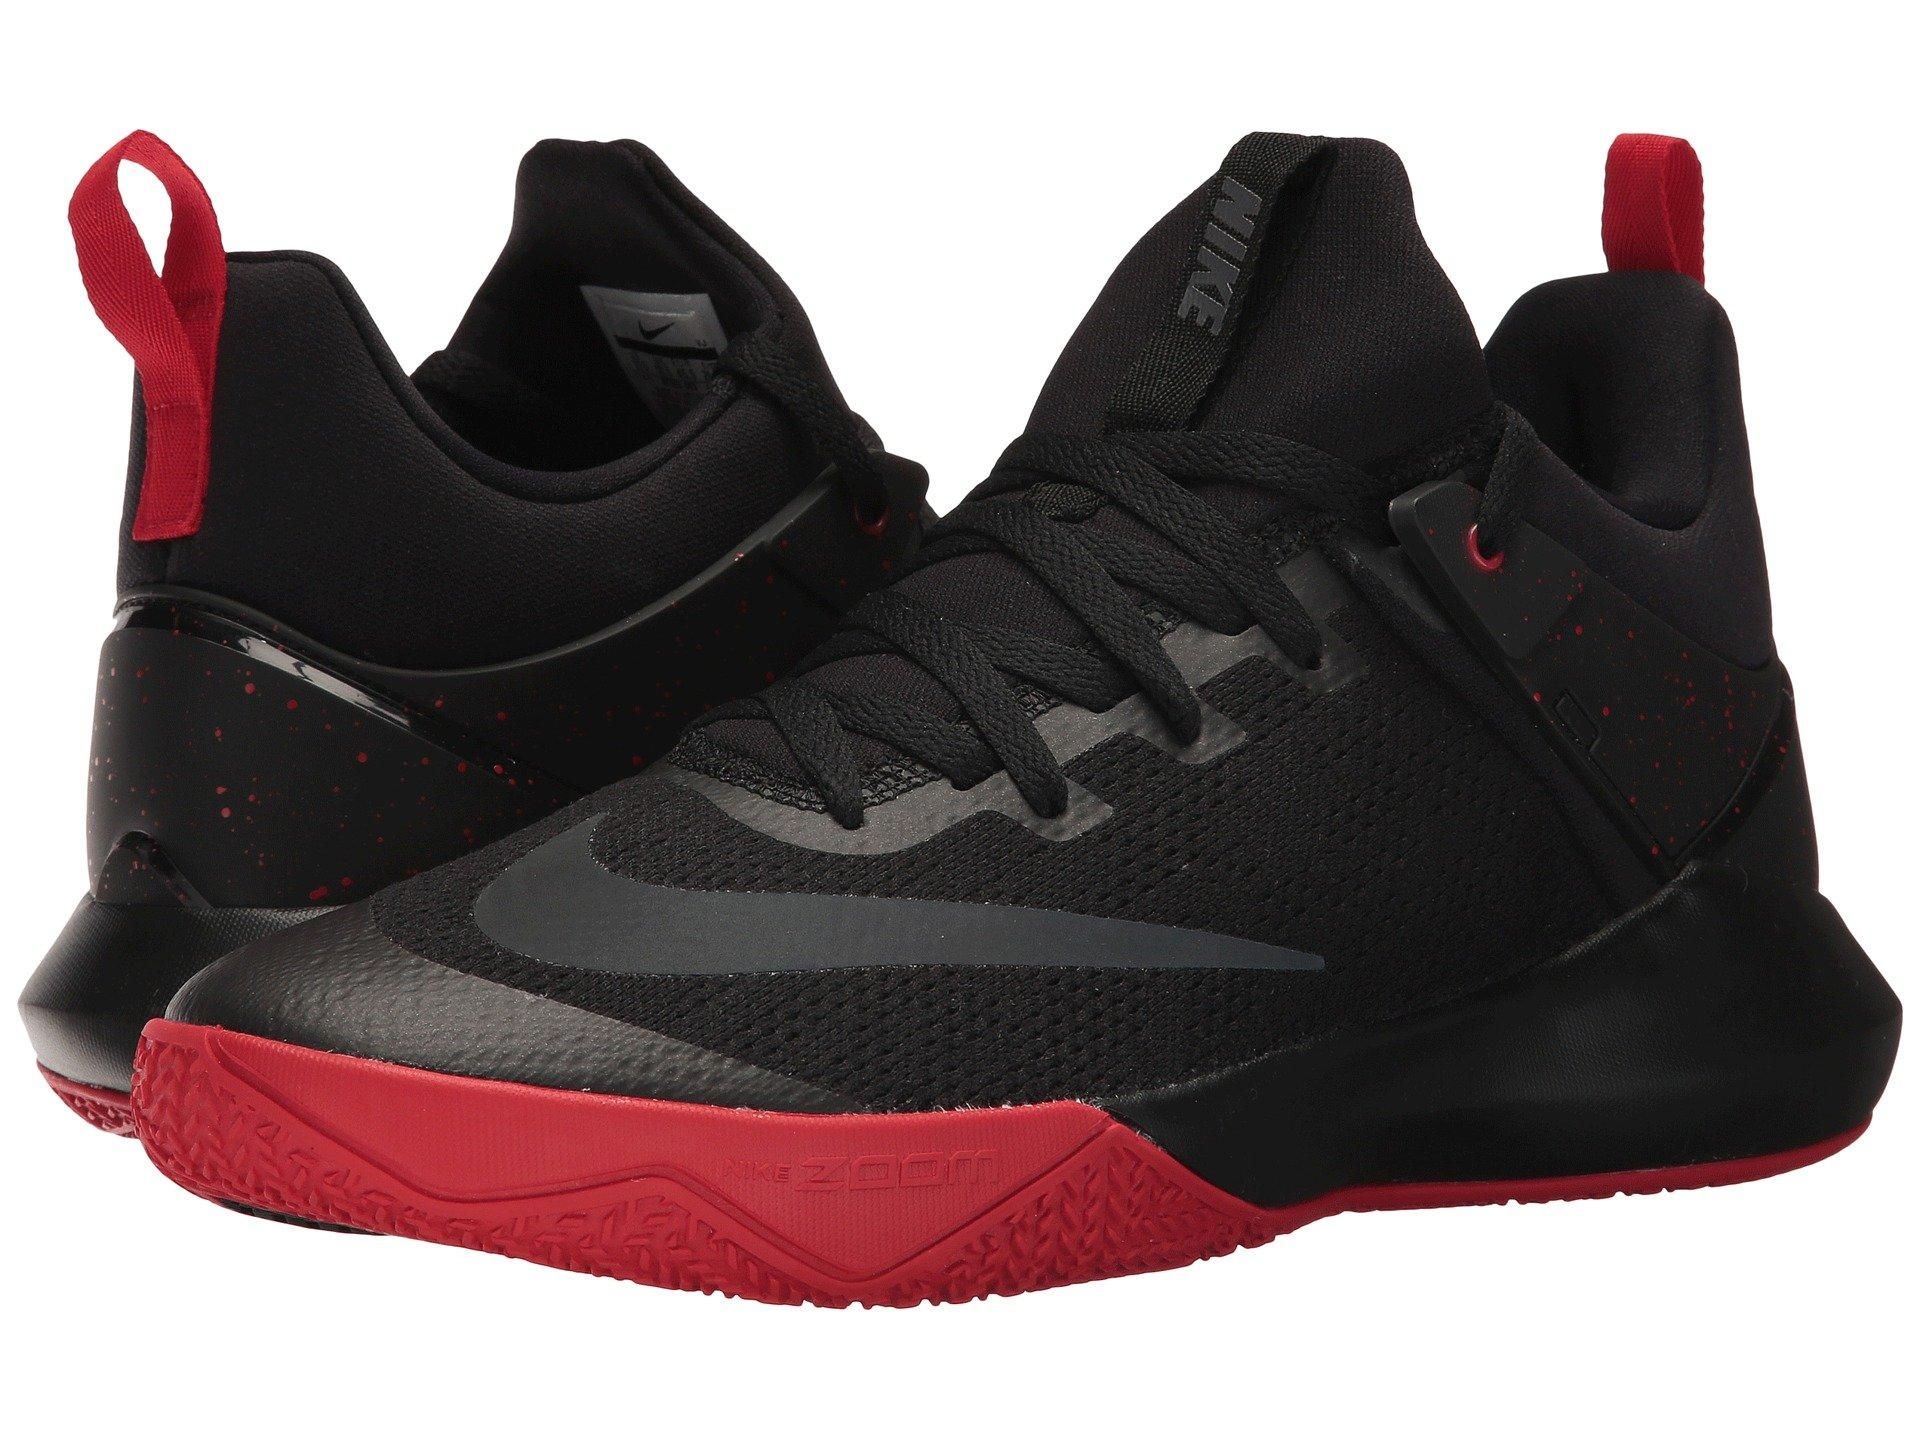 7f2ae12cd304b Nike Zoom Shift In Black Anthracite University Red